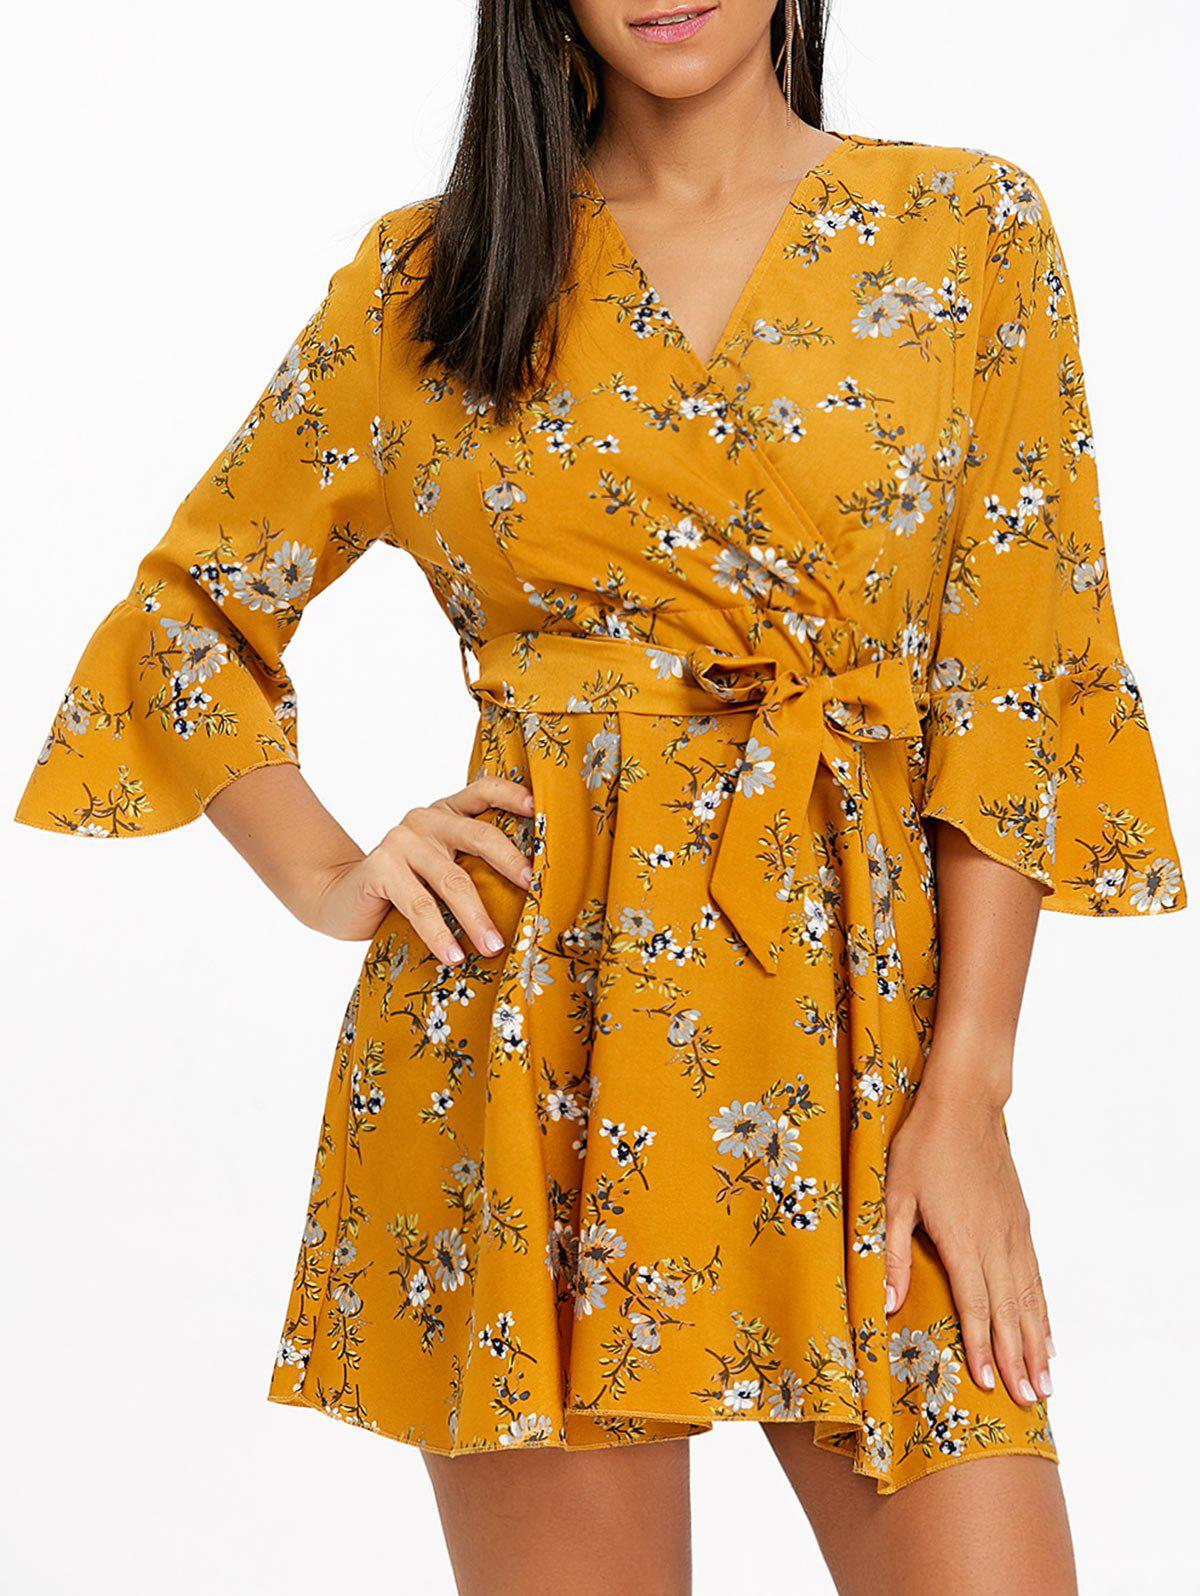 Floral Print Bell Sleeve Chiffon Mini Dress - YELLOW XL